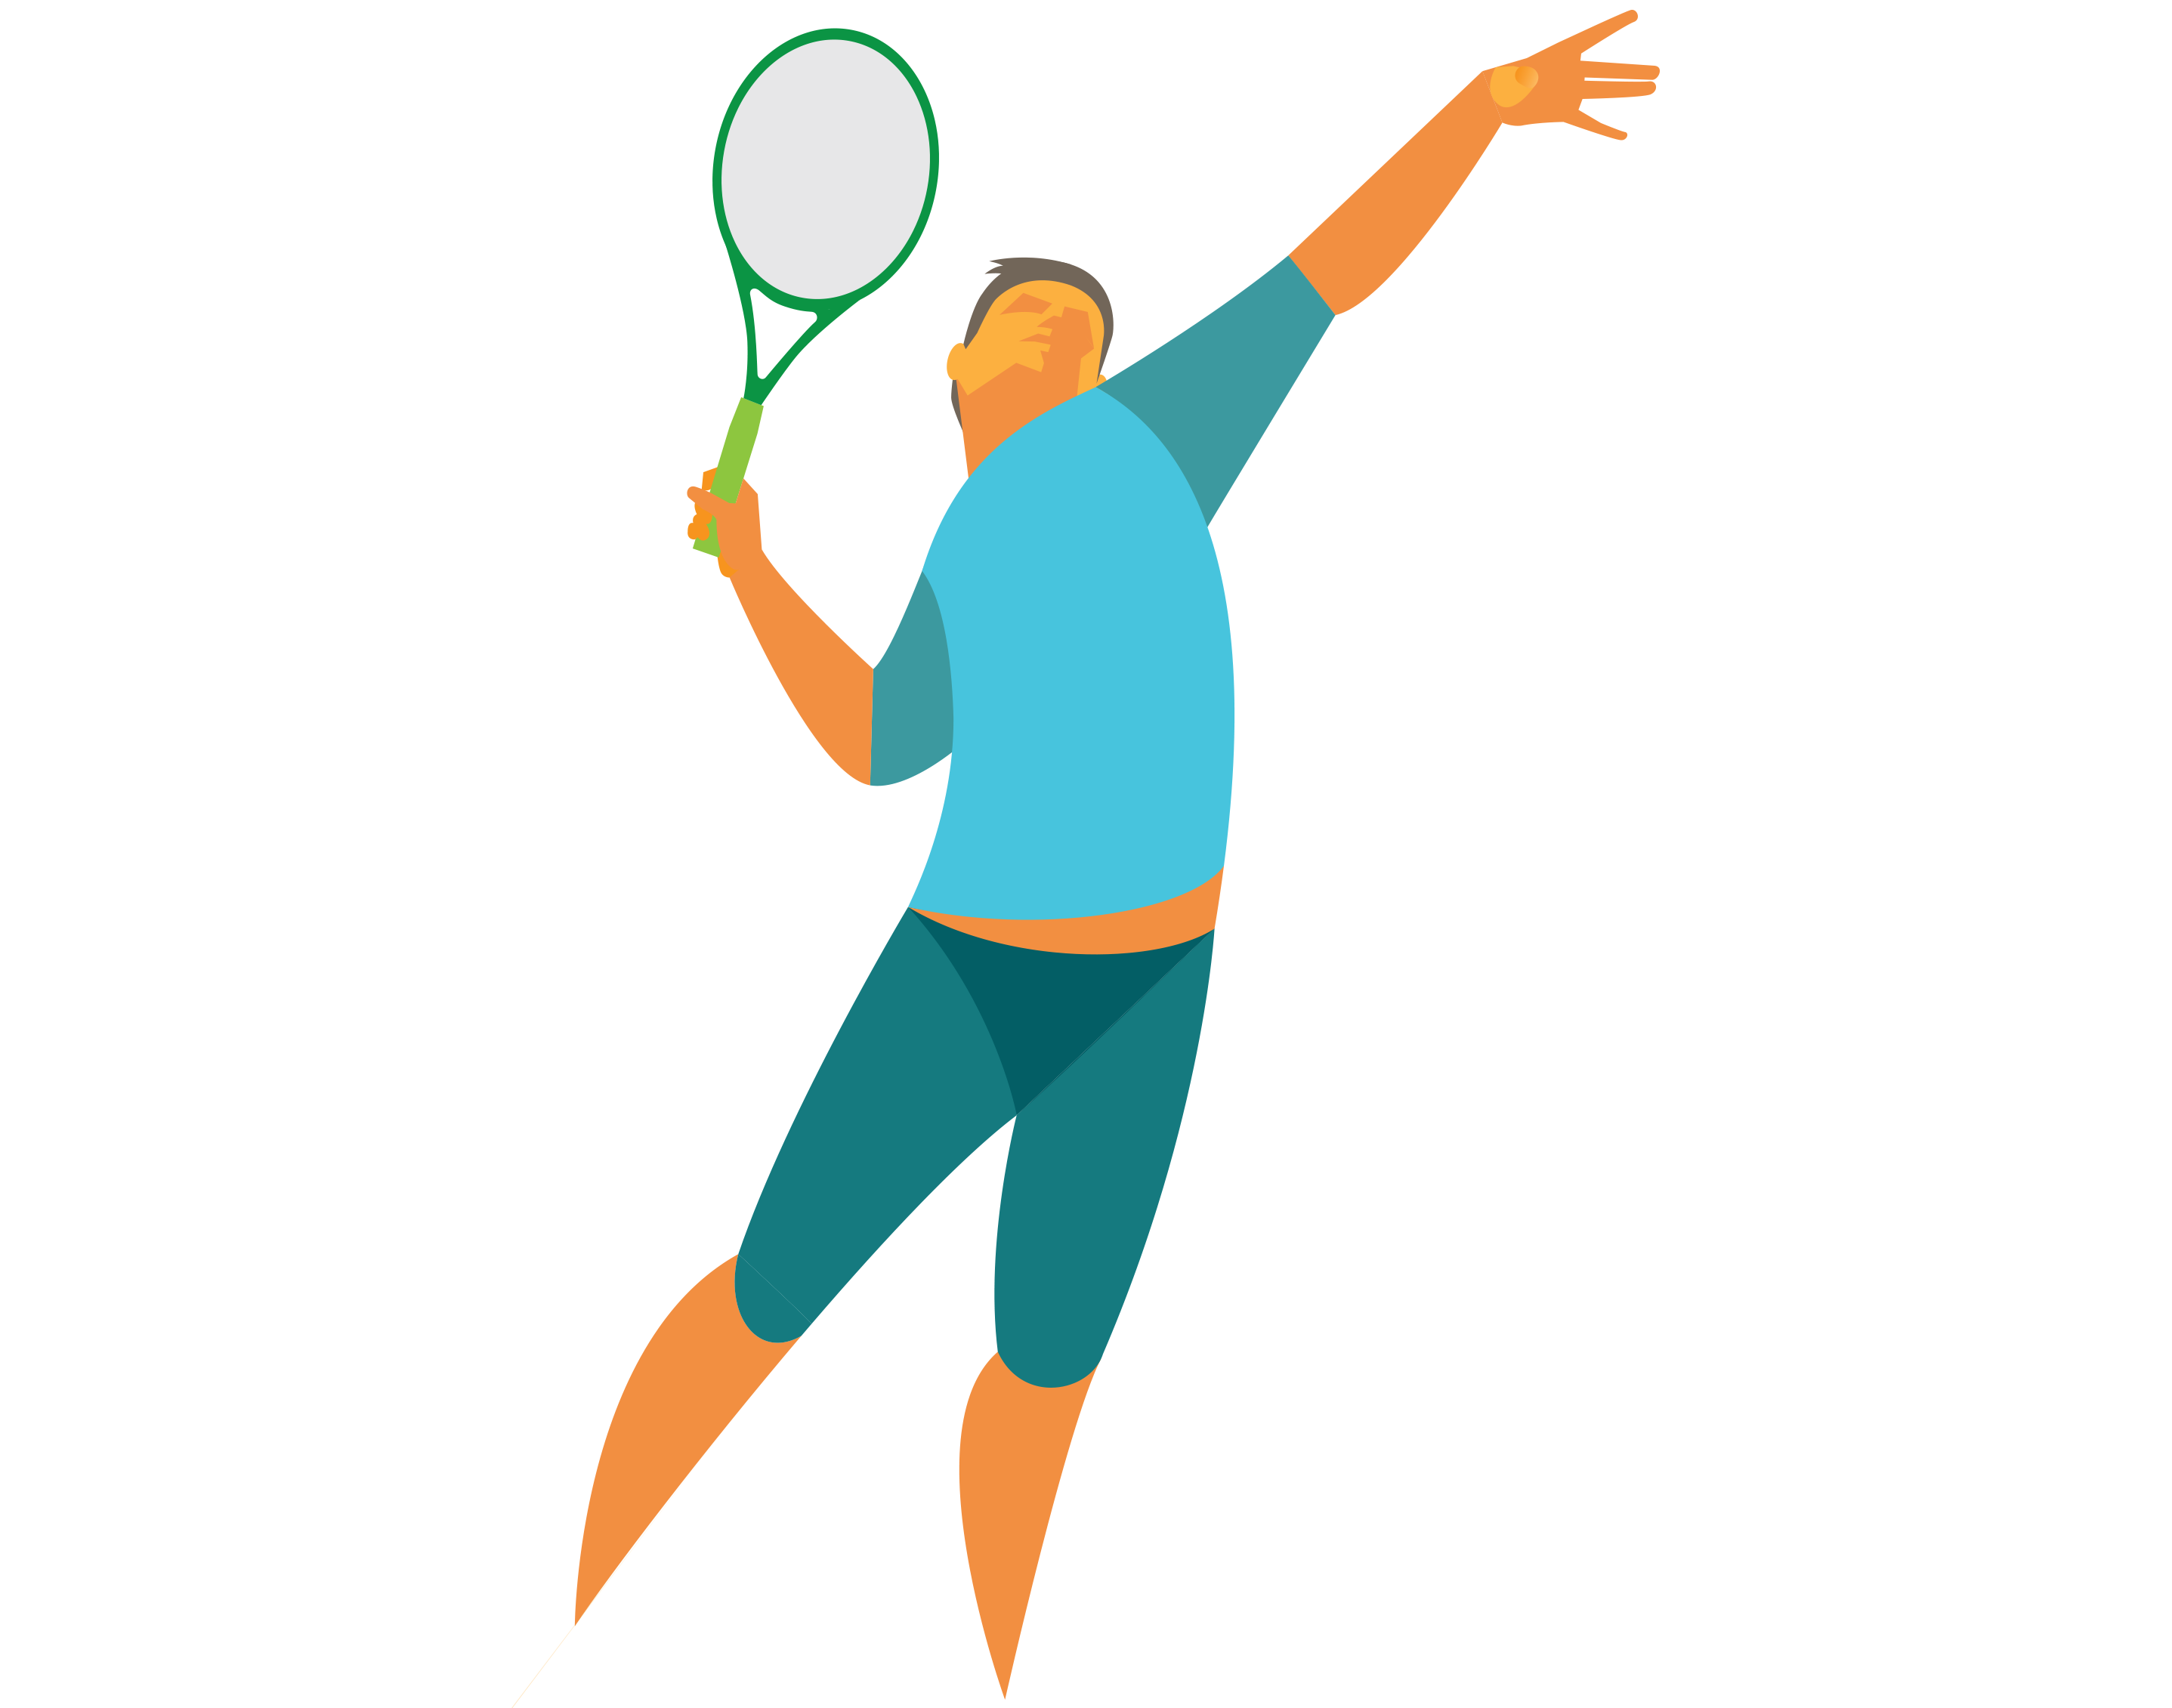 Racket clipart lawn tennis. Sports png hd vector